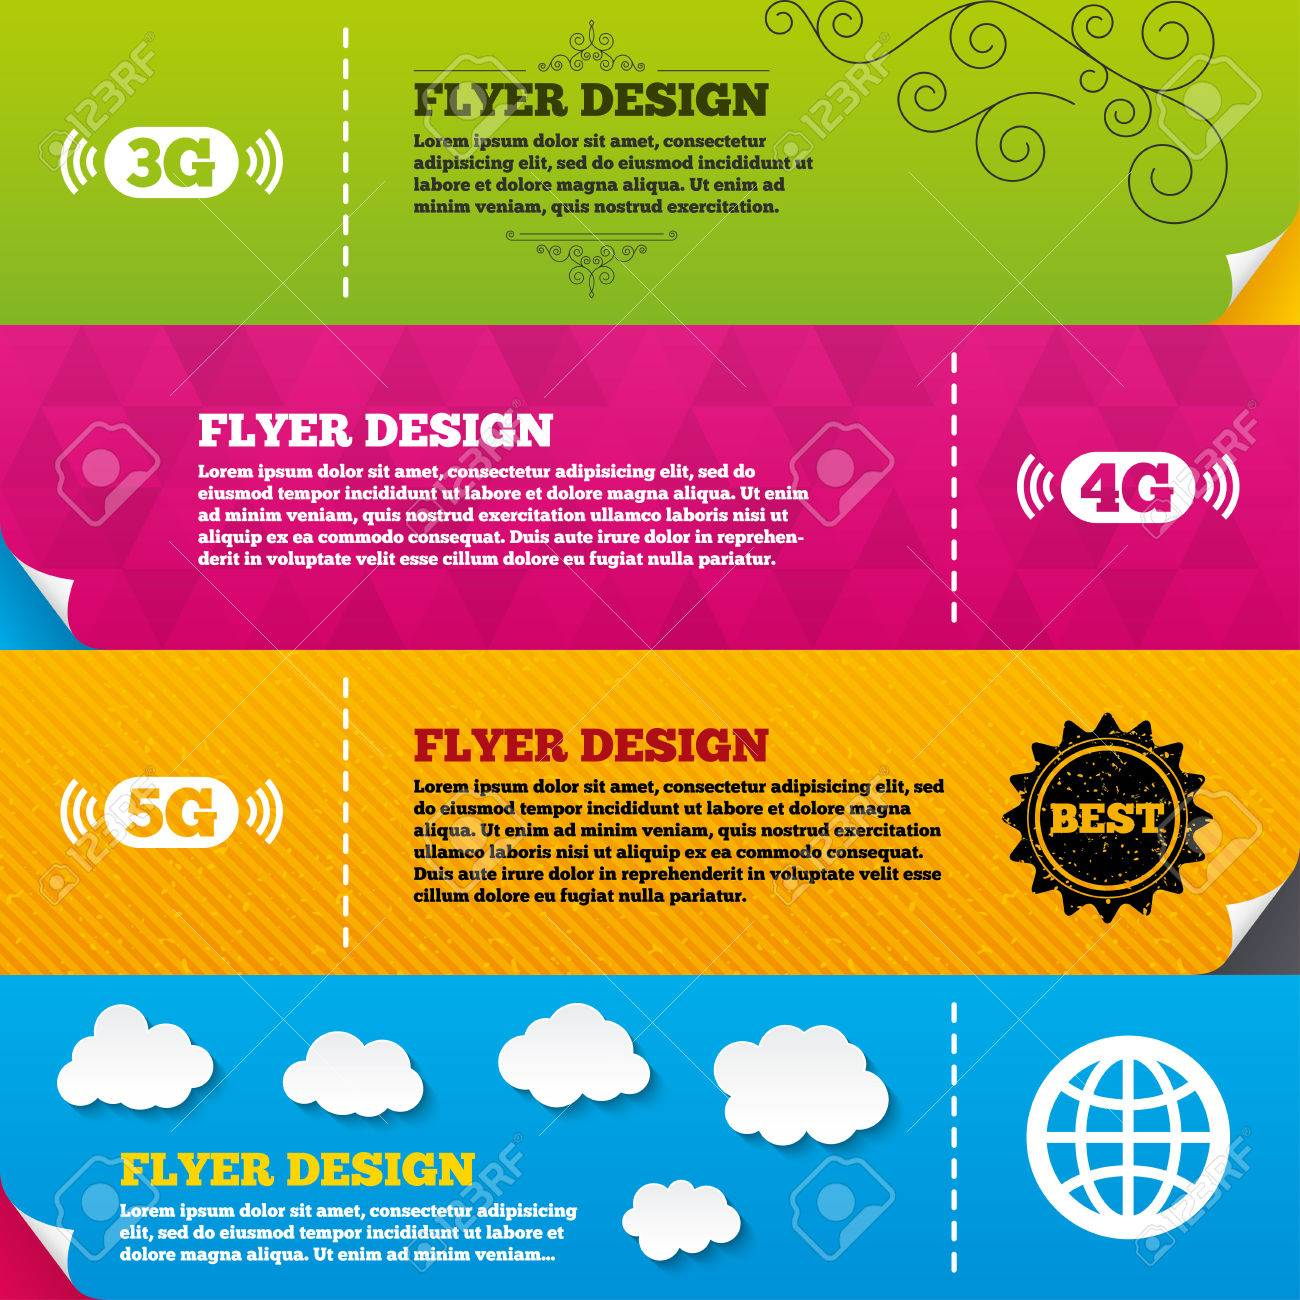 Flyer brochure designs  Mobile telecommunications icons  3G,